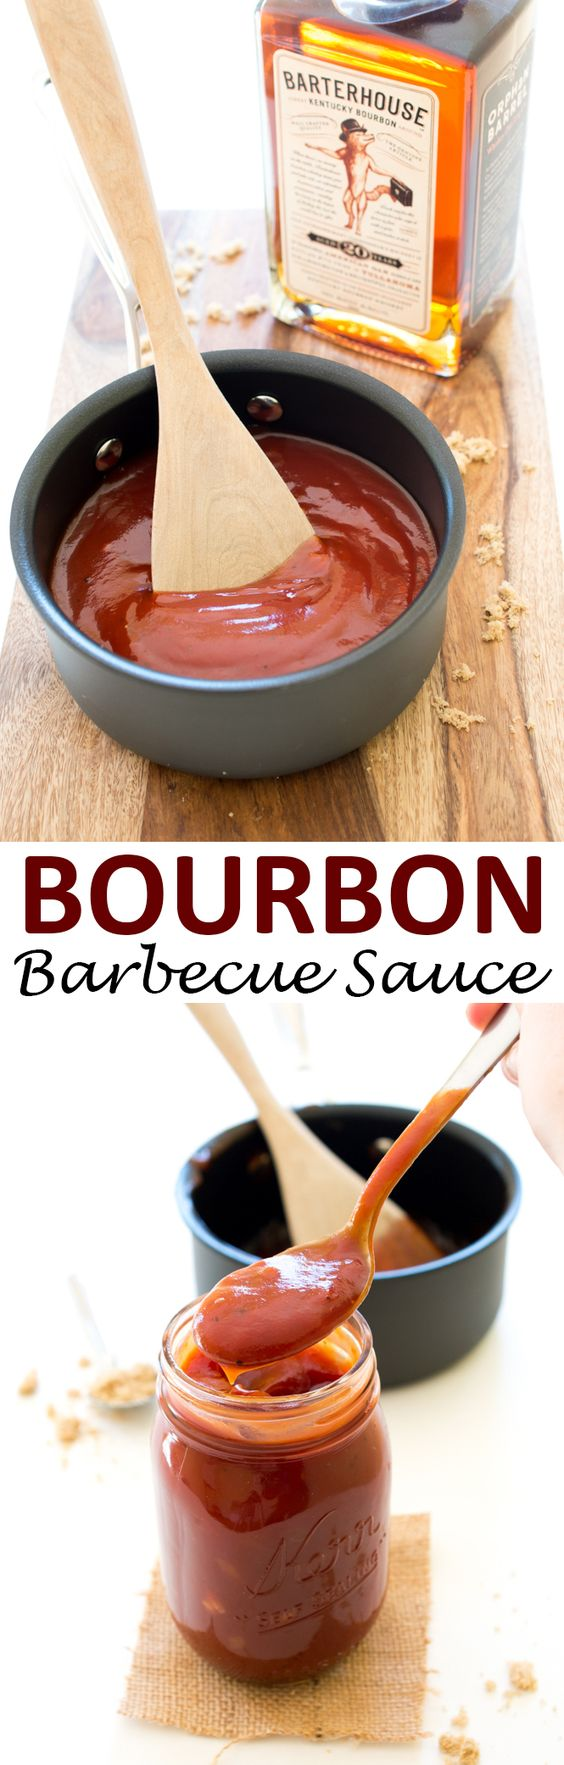 ... bourbon one pot full of barbecue sauce sauces bourbon sauce pots sweet